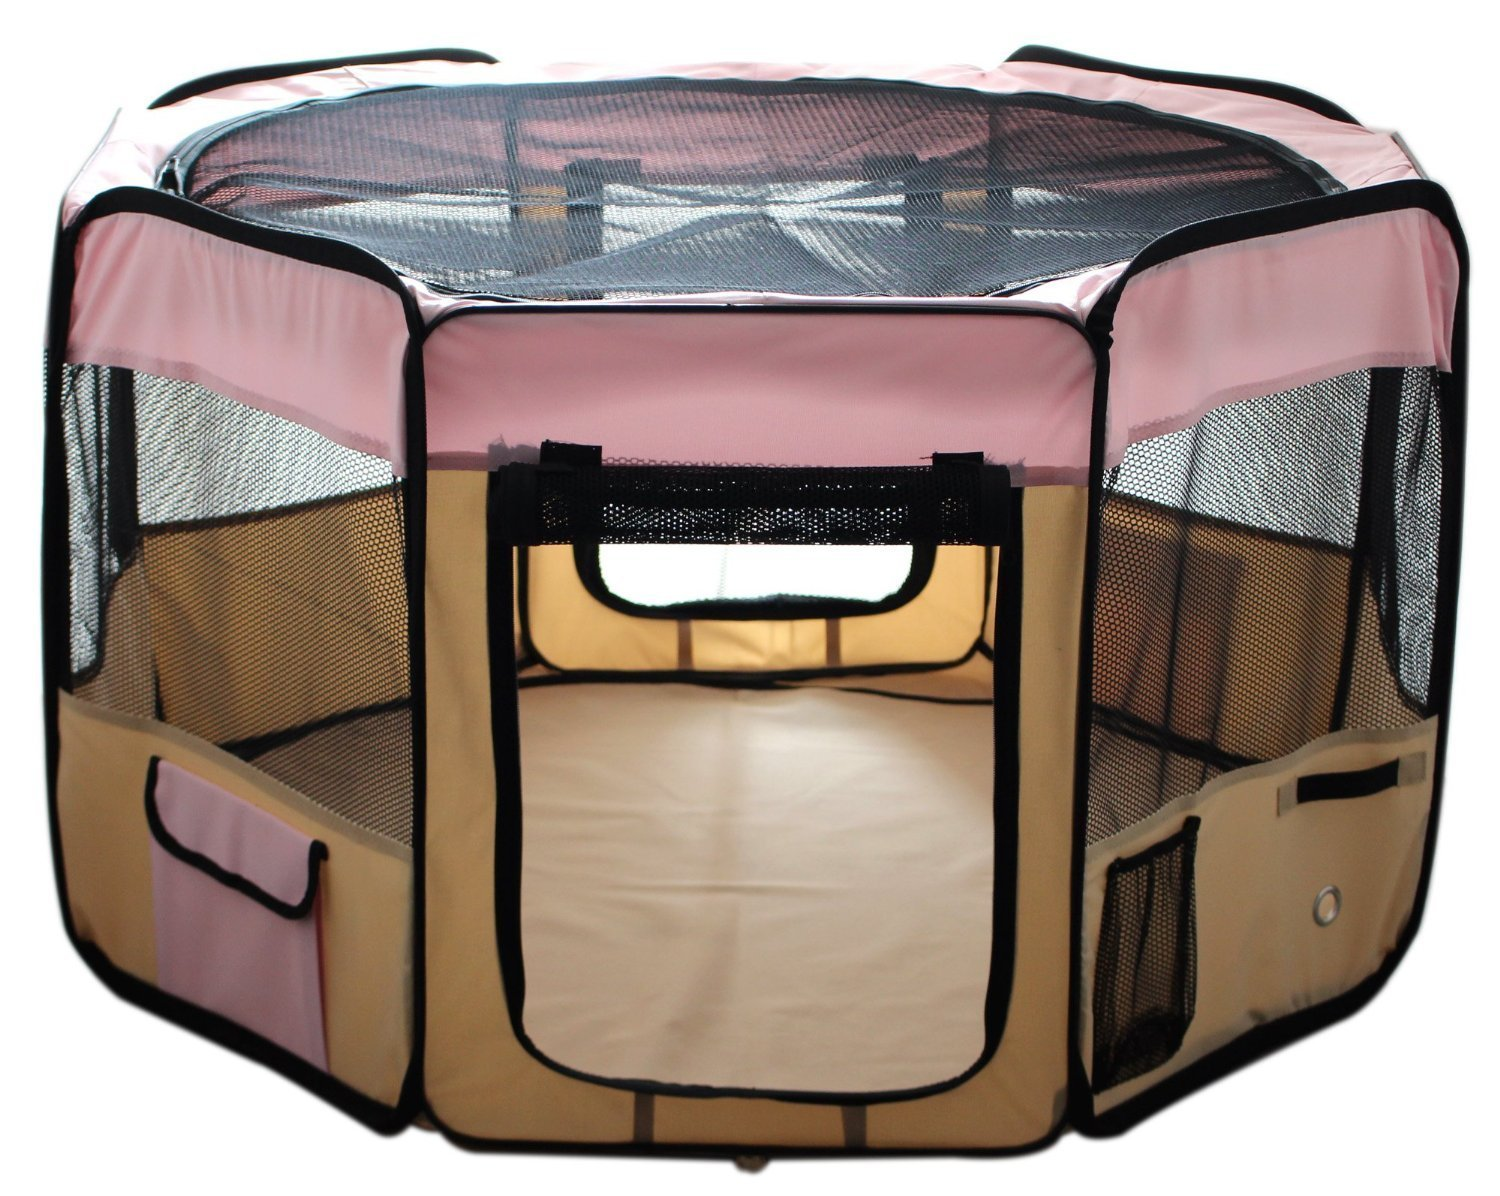 ESK Collection 48'' Pet Puppy Dog Playpen Exercise Pen Kennel 600d Oxford Cloth Pink by ESK Collection